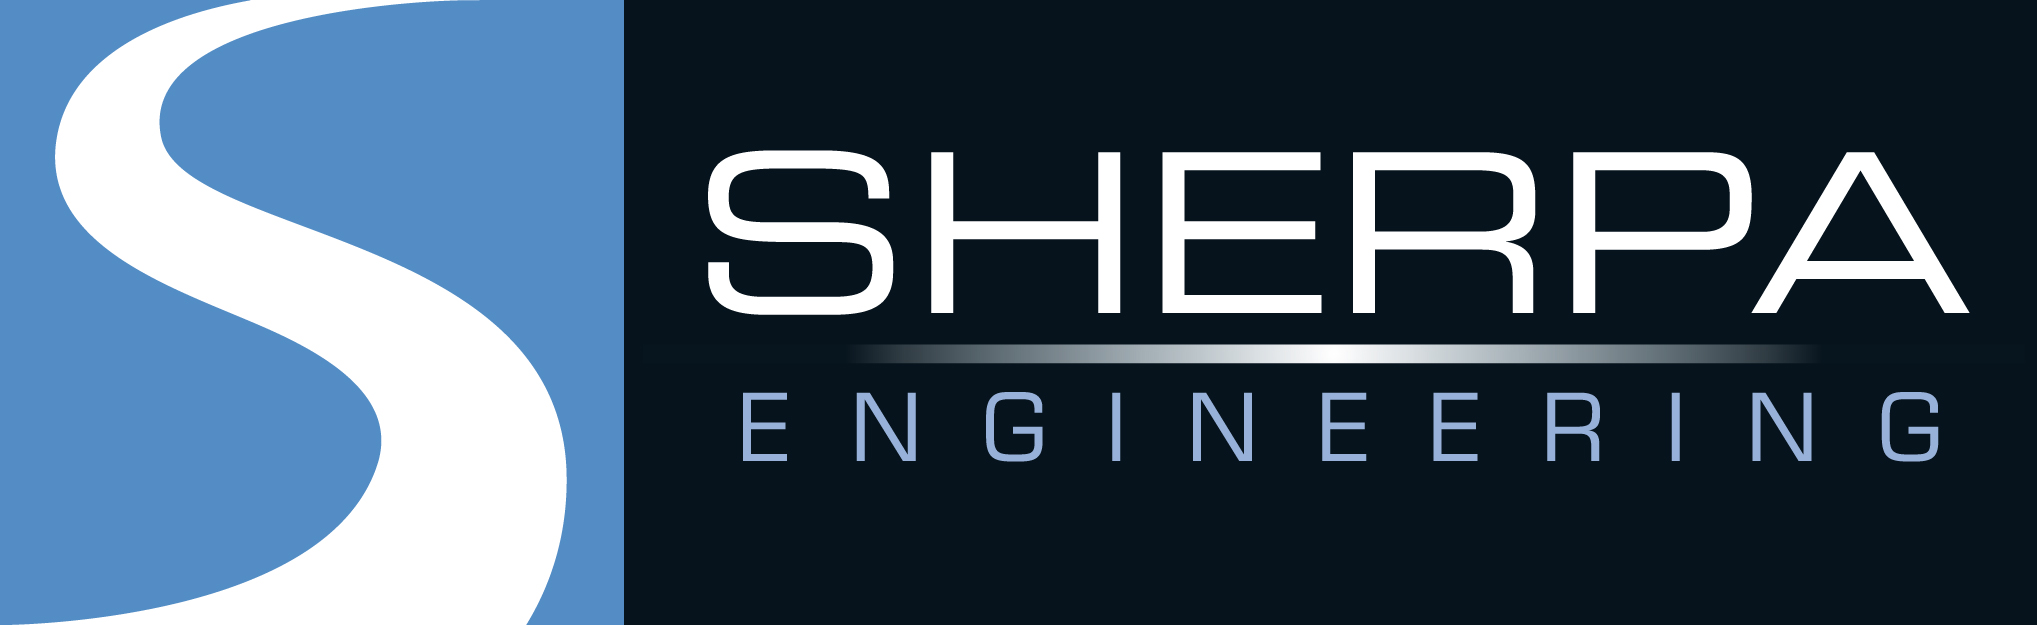 Sherpa Engineering